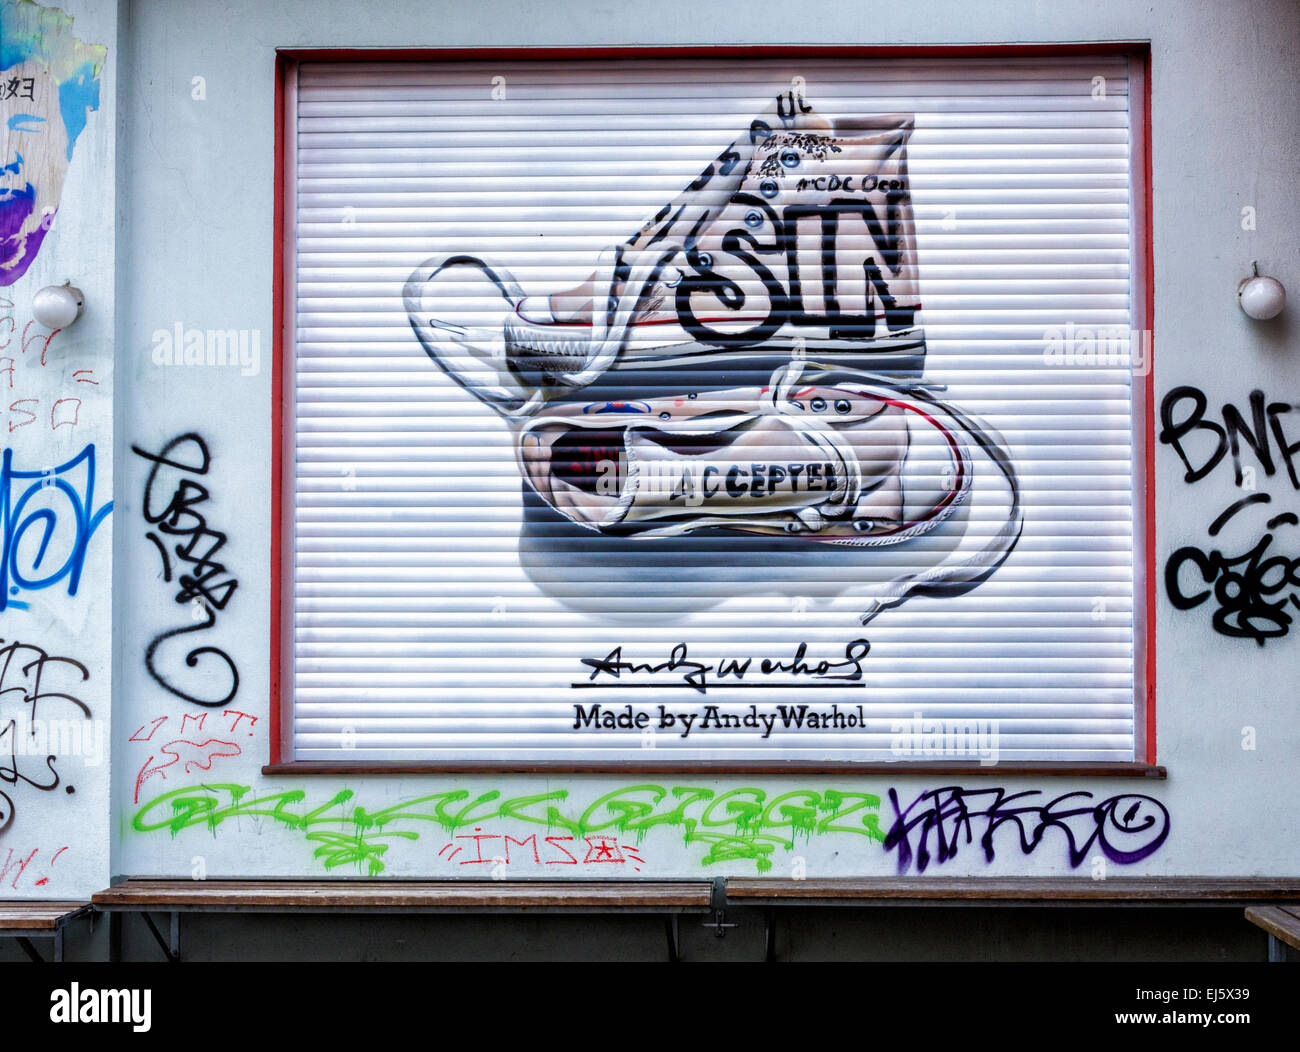 Advertisement for Converse trainers, chucks named after Chuck Taylor amongst graffiti on shop blind, Mitte Berlin - Stock Image